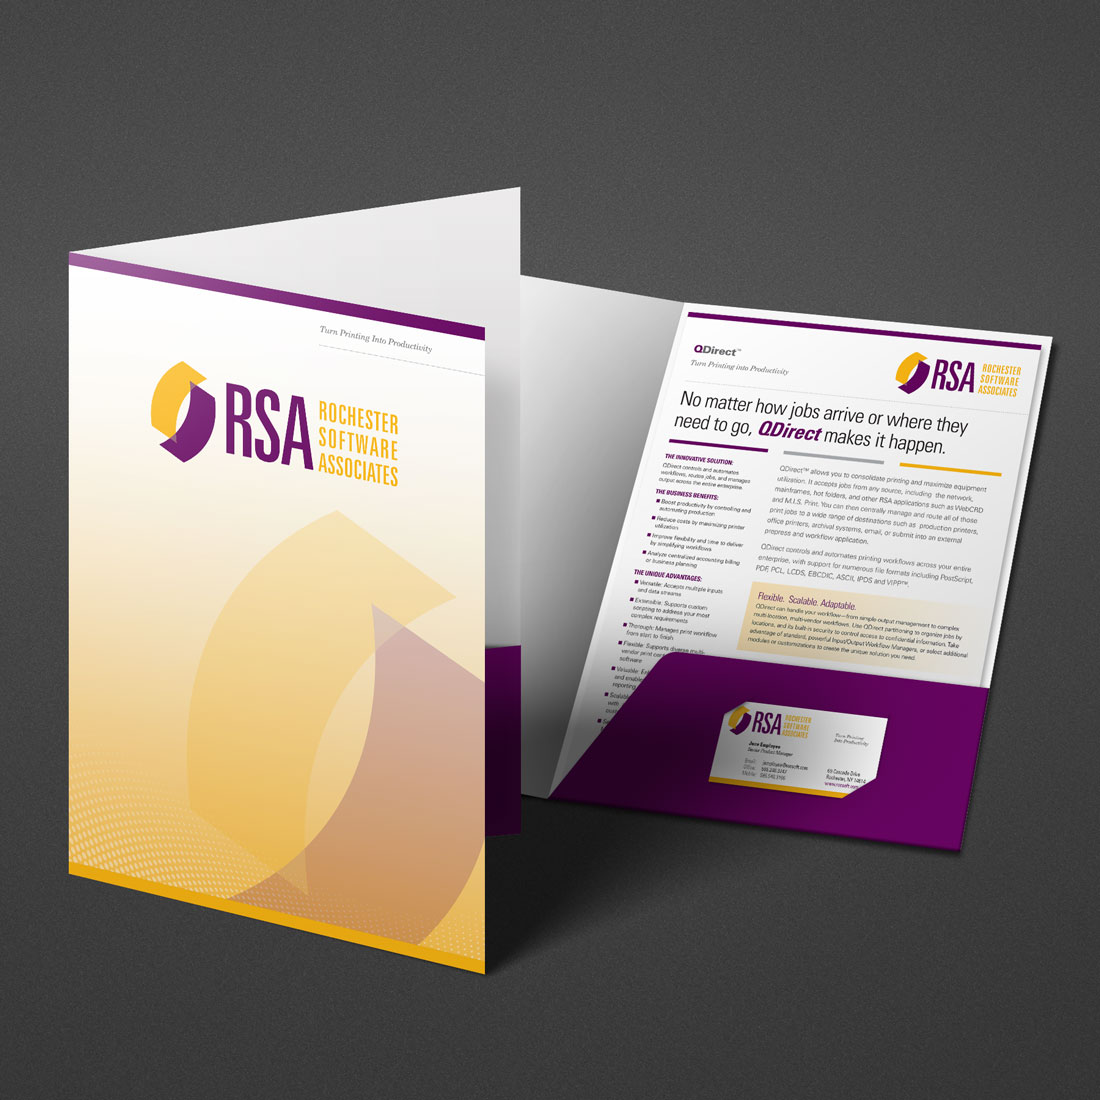 Photo of corporate brochure designed by Pixelpunk Creative for Rochester Software Associates.